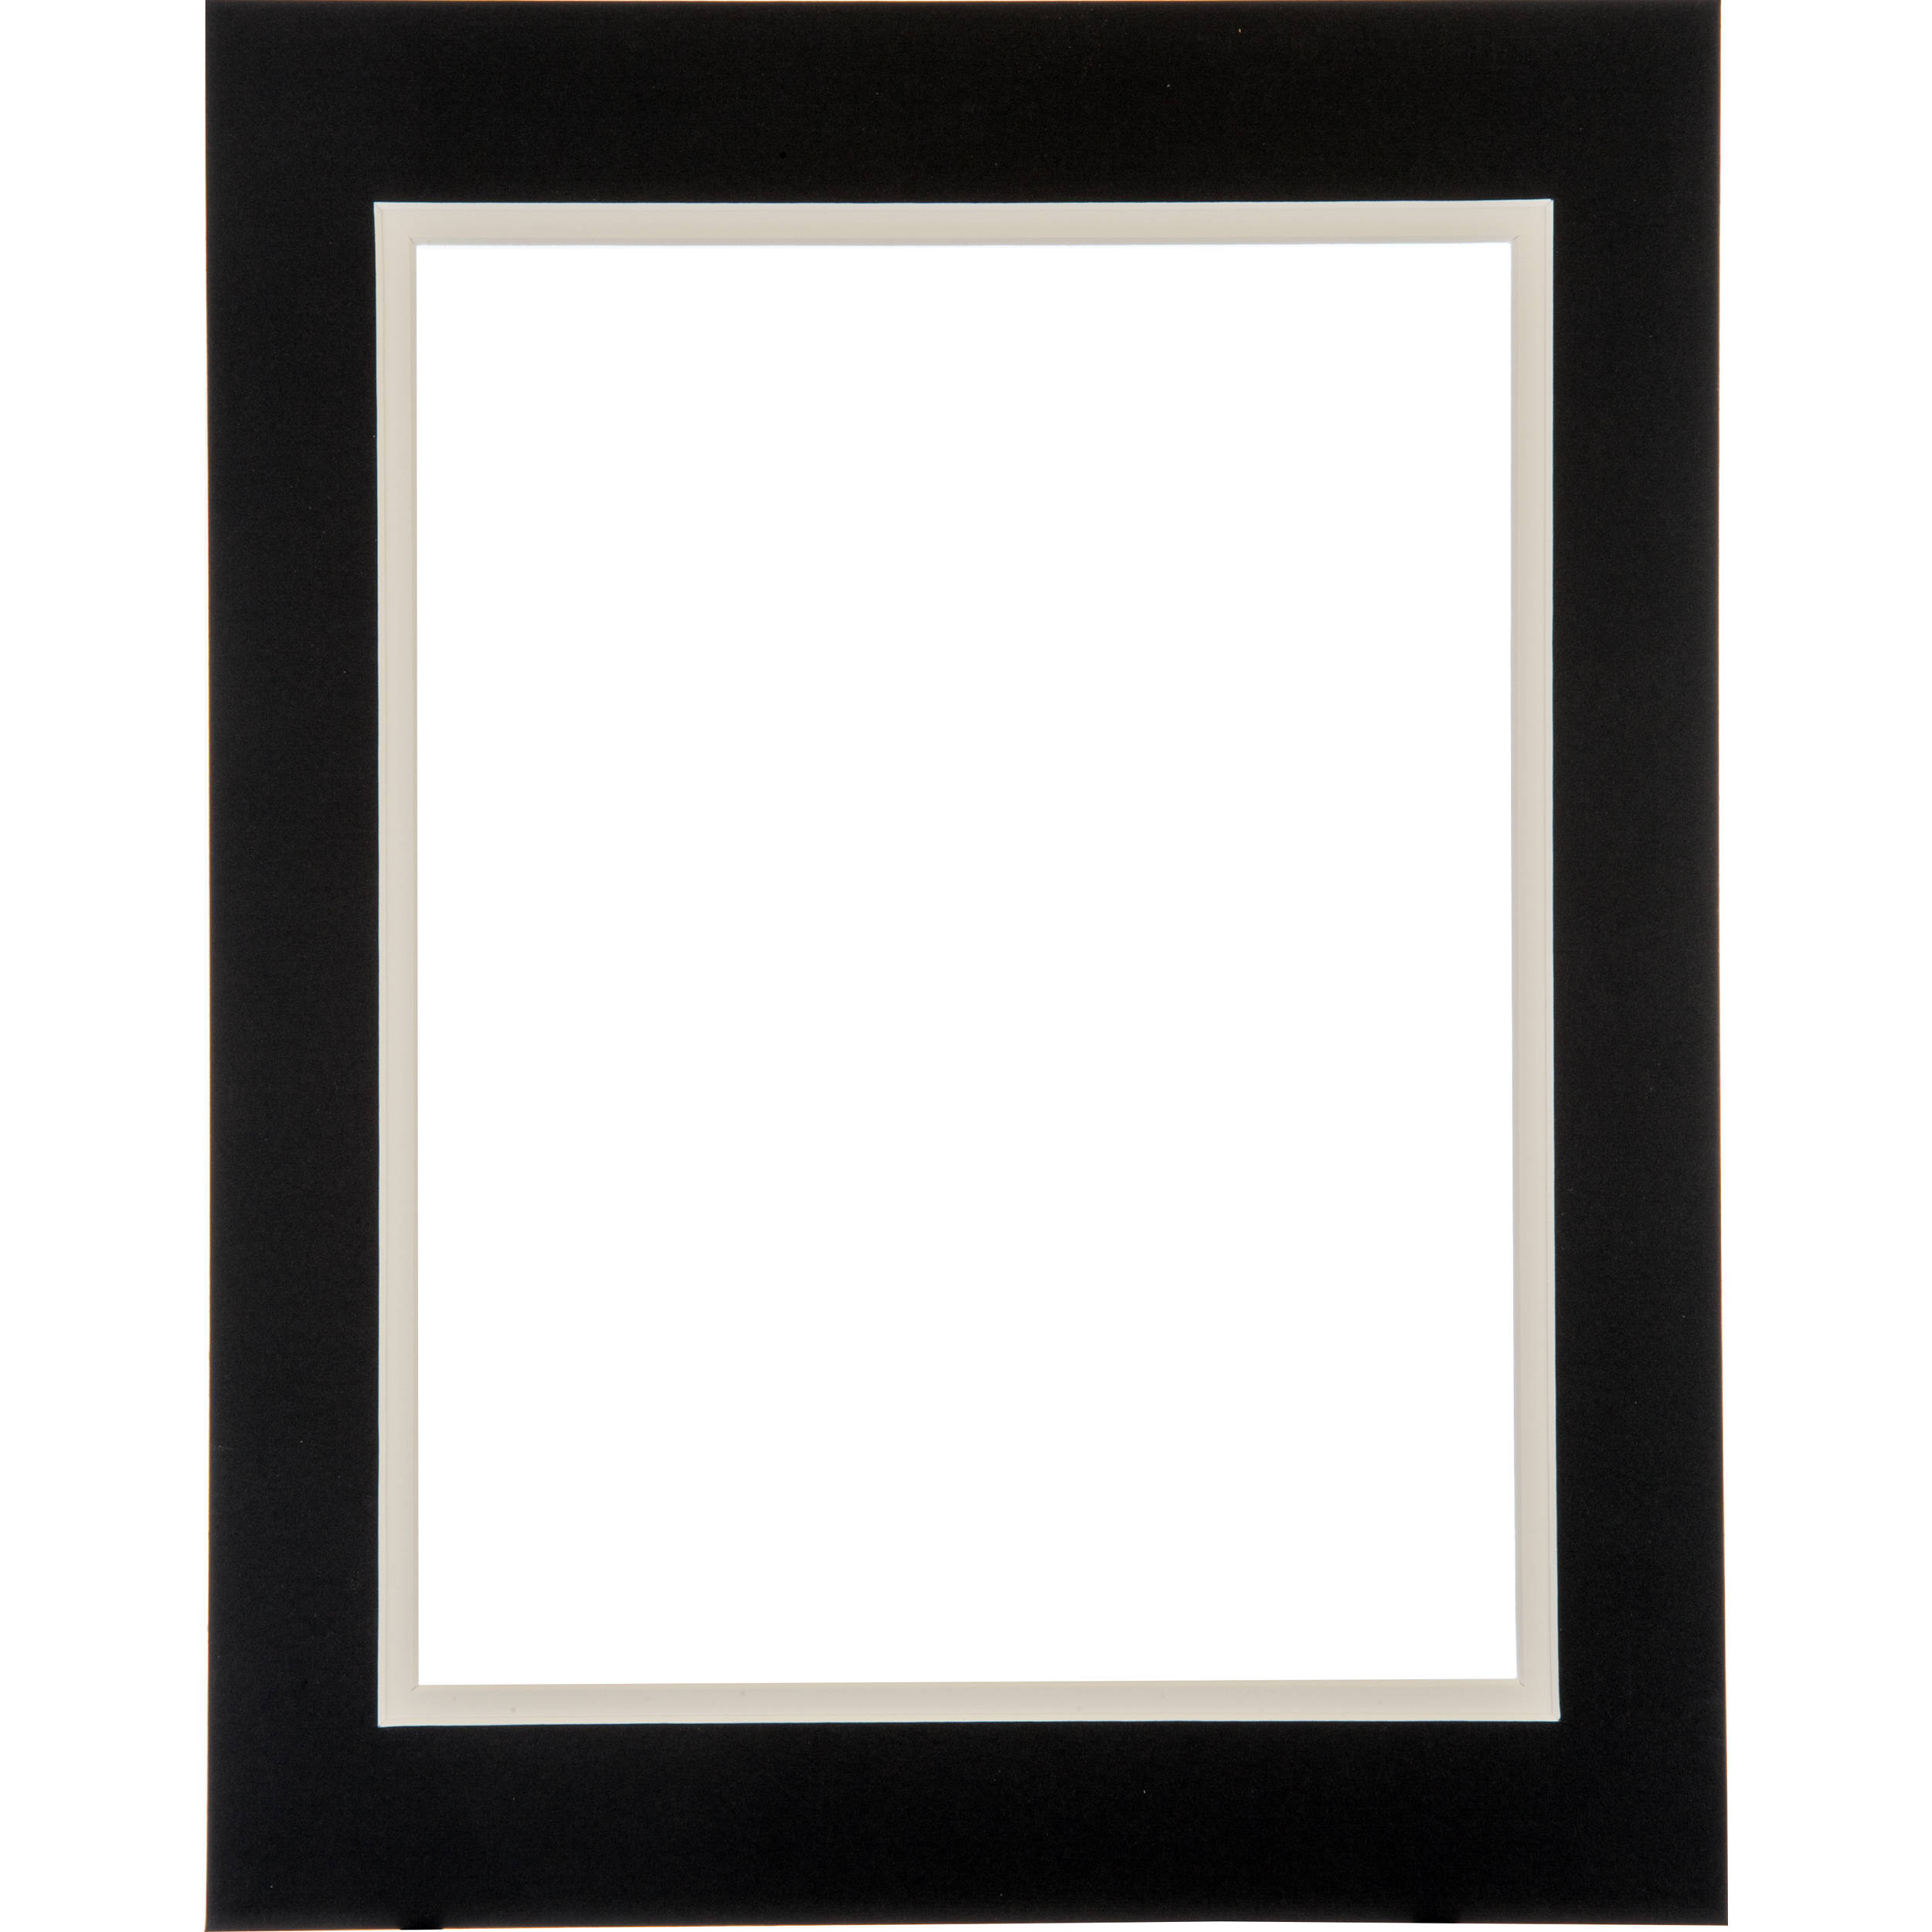 "Logan Graphics 11 x 14"" Double Mat Frame with 8.5 M6033-42"